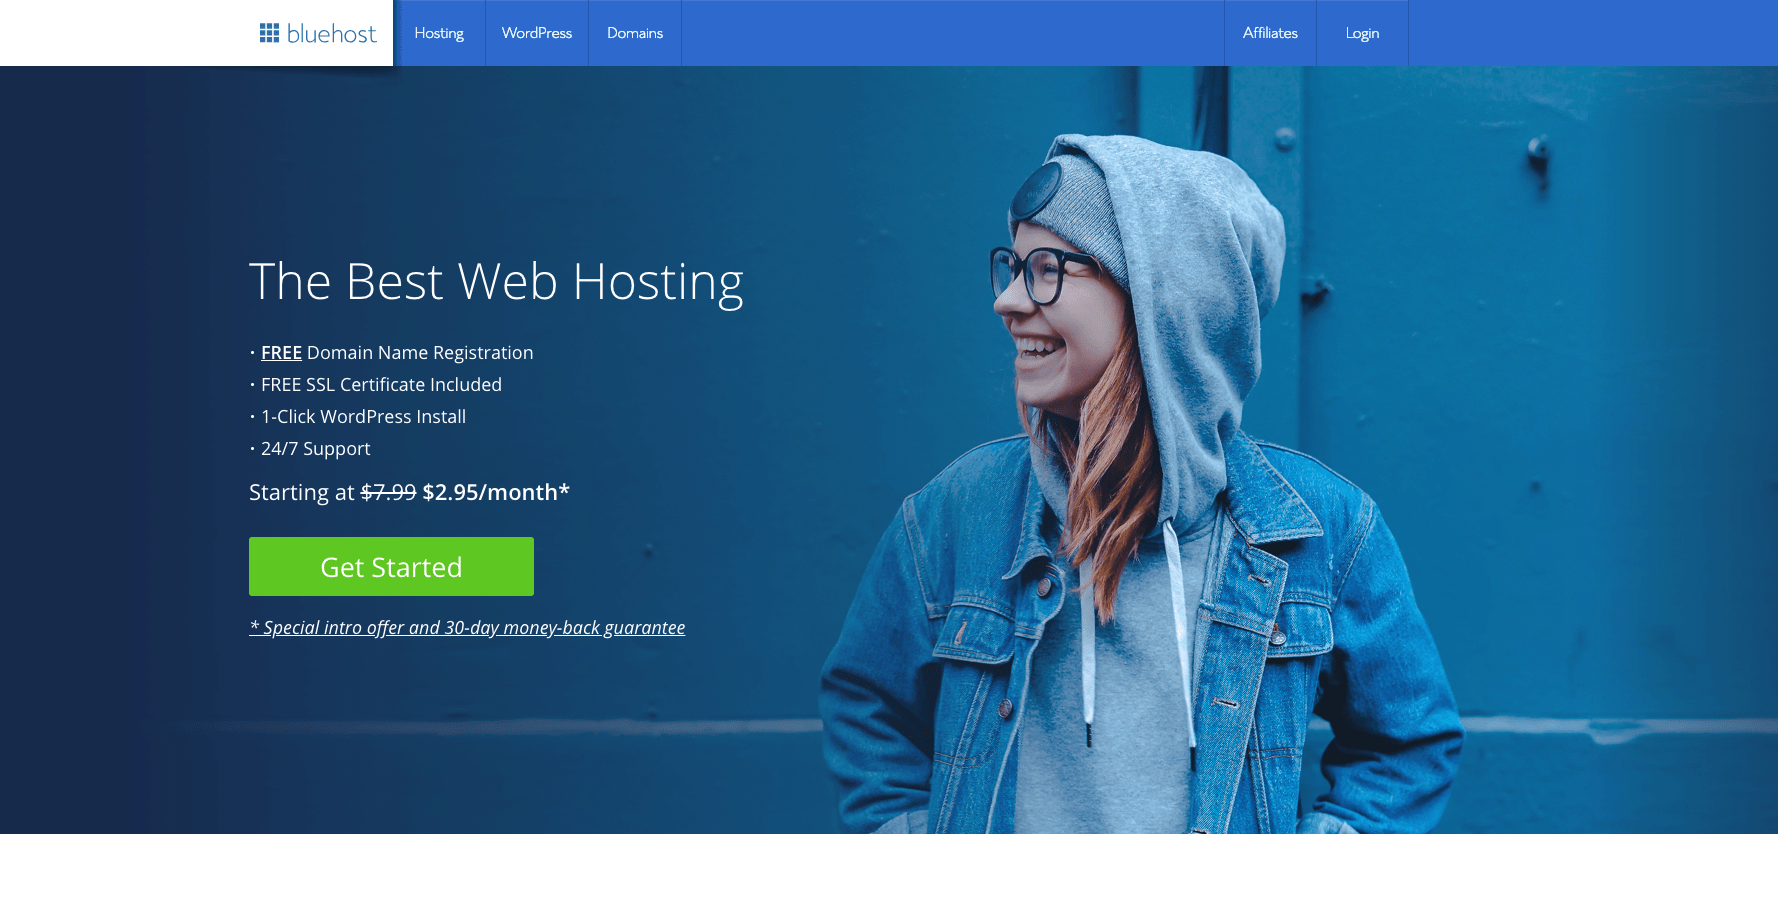 bluehost main page